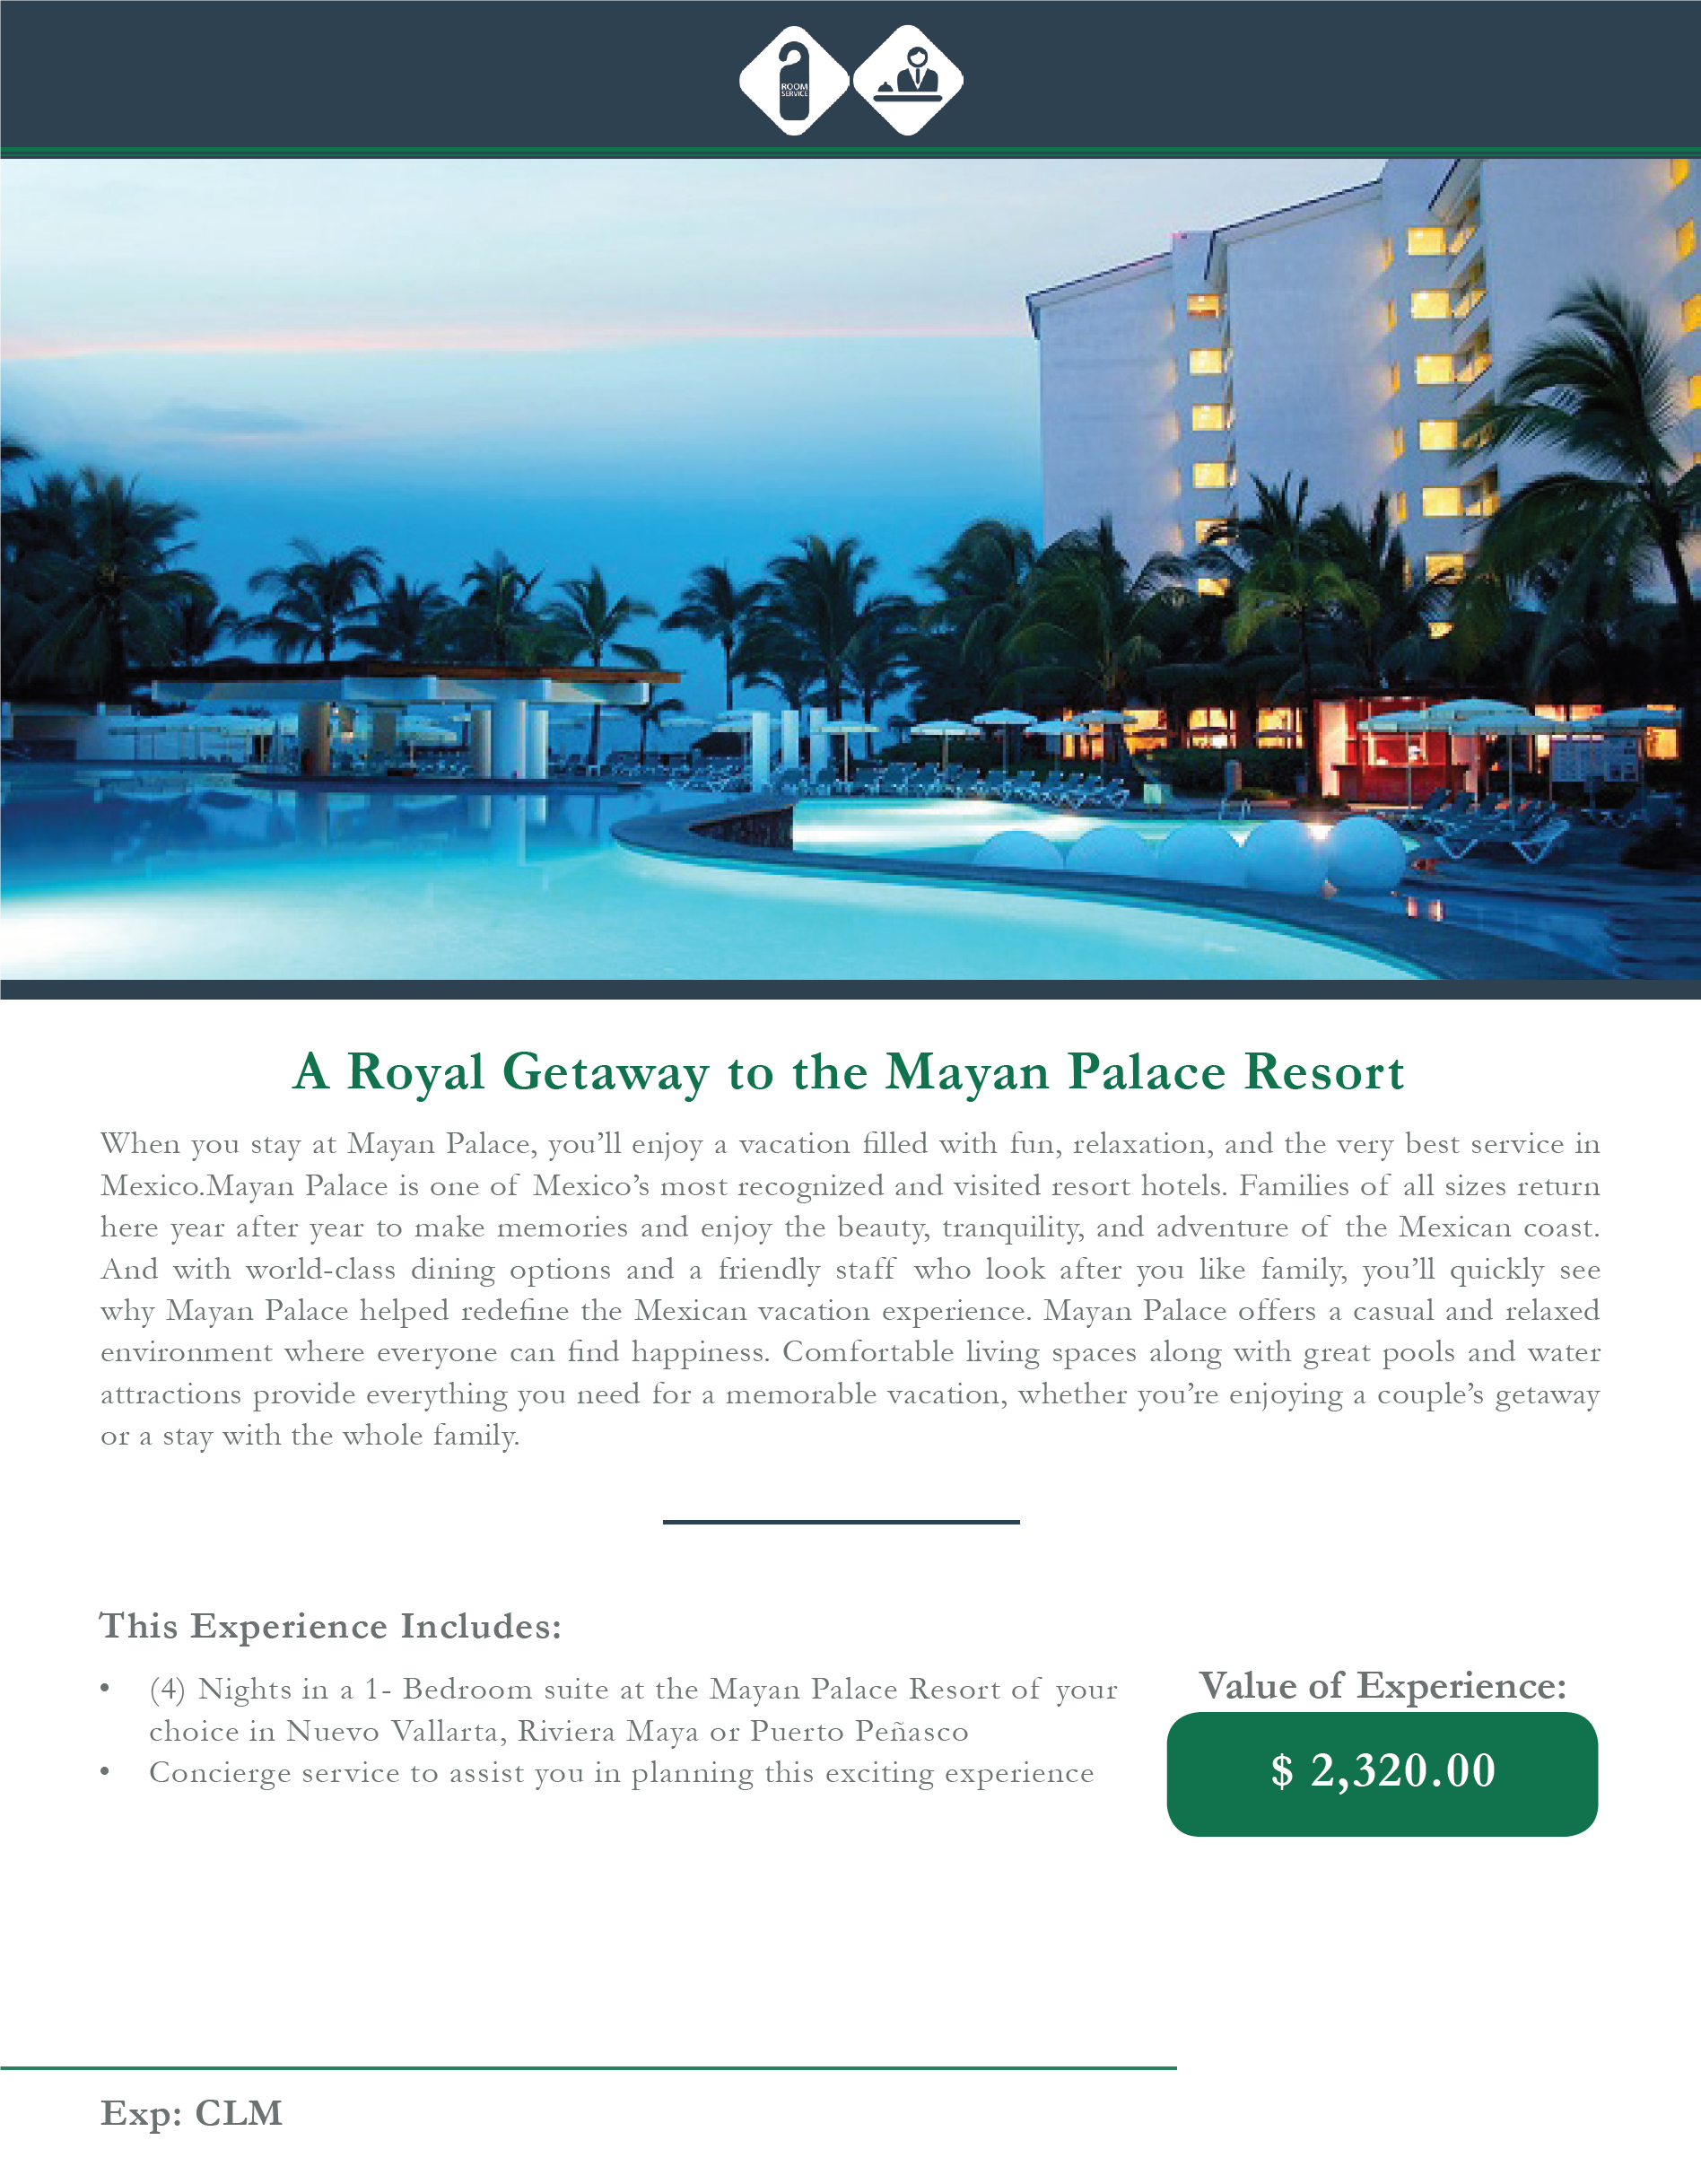 A Royal Getaway to the Mayan Palace